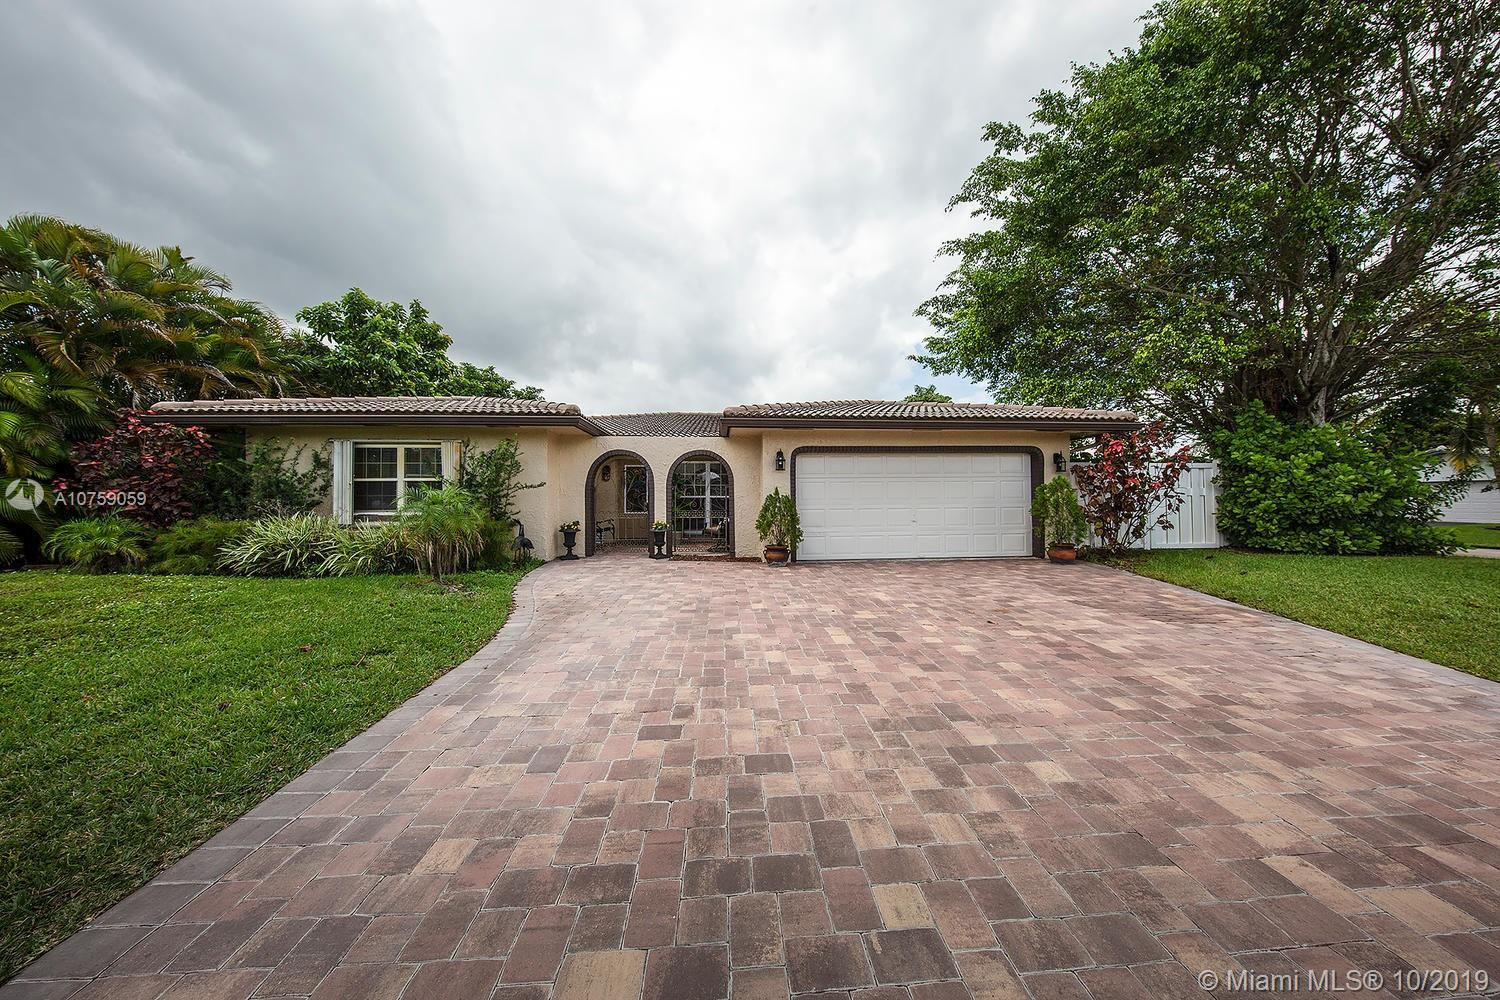 Unique opportunity to own a Spectacular remodeled Corner lot in the heart of Coral Springs. This property features a unique corner lot with a large pool and fenced in yard. Interior of the property has been almost fully renovated providing turn key finished all throughout the property, just bring your furniture and move in! Take advantage of this Prestigious, sought after neighborhood with NO HOA!! Close to major highways, shopping plazas, and A+ schools for all ages, this beauty will not last, please contact listing agent for all showings today. (financing available through preferred lender, contact me today on how you can save 1% off closing costs)